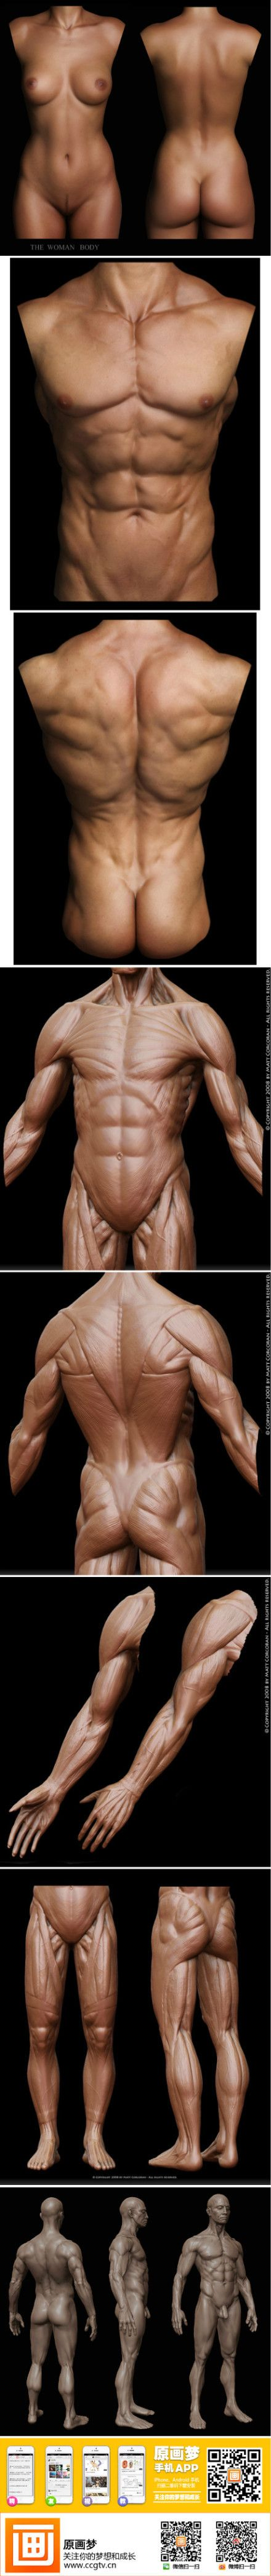 Female and male body parts